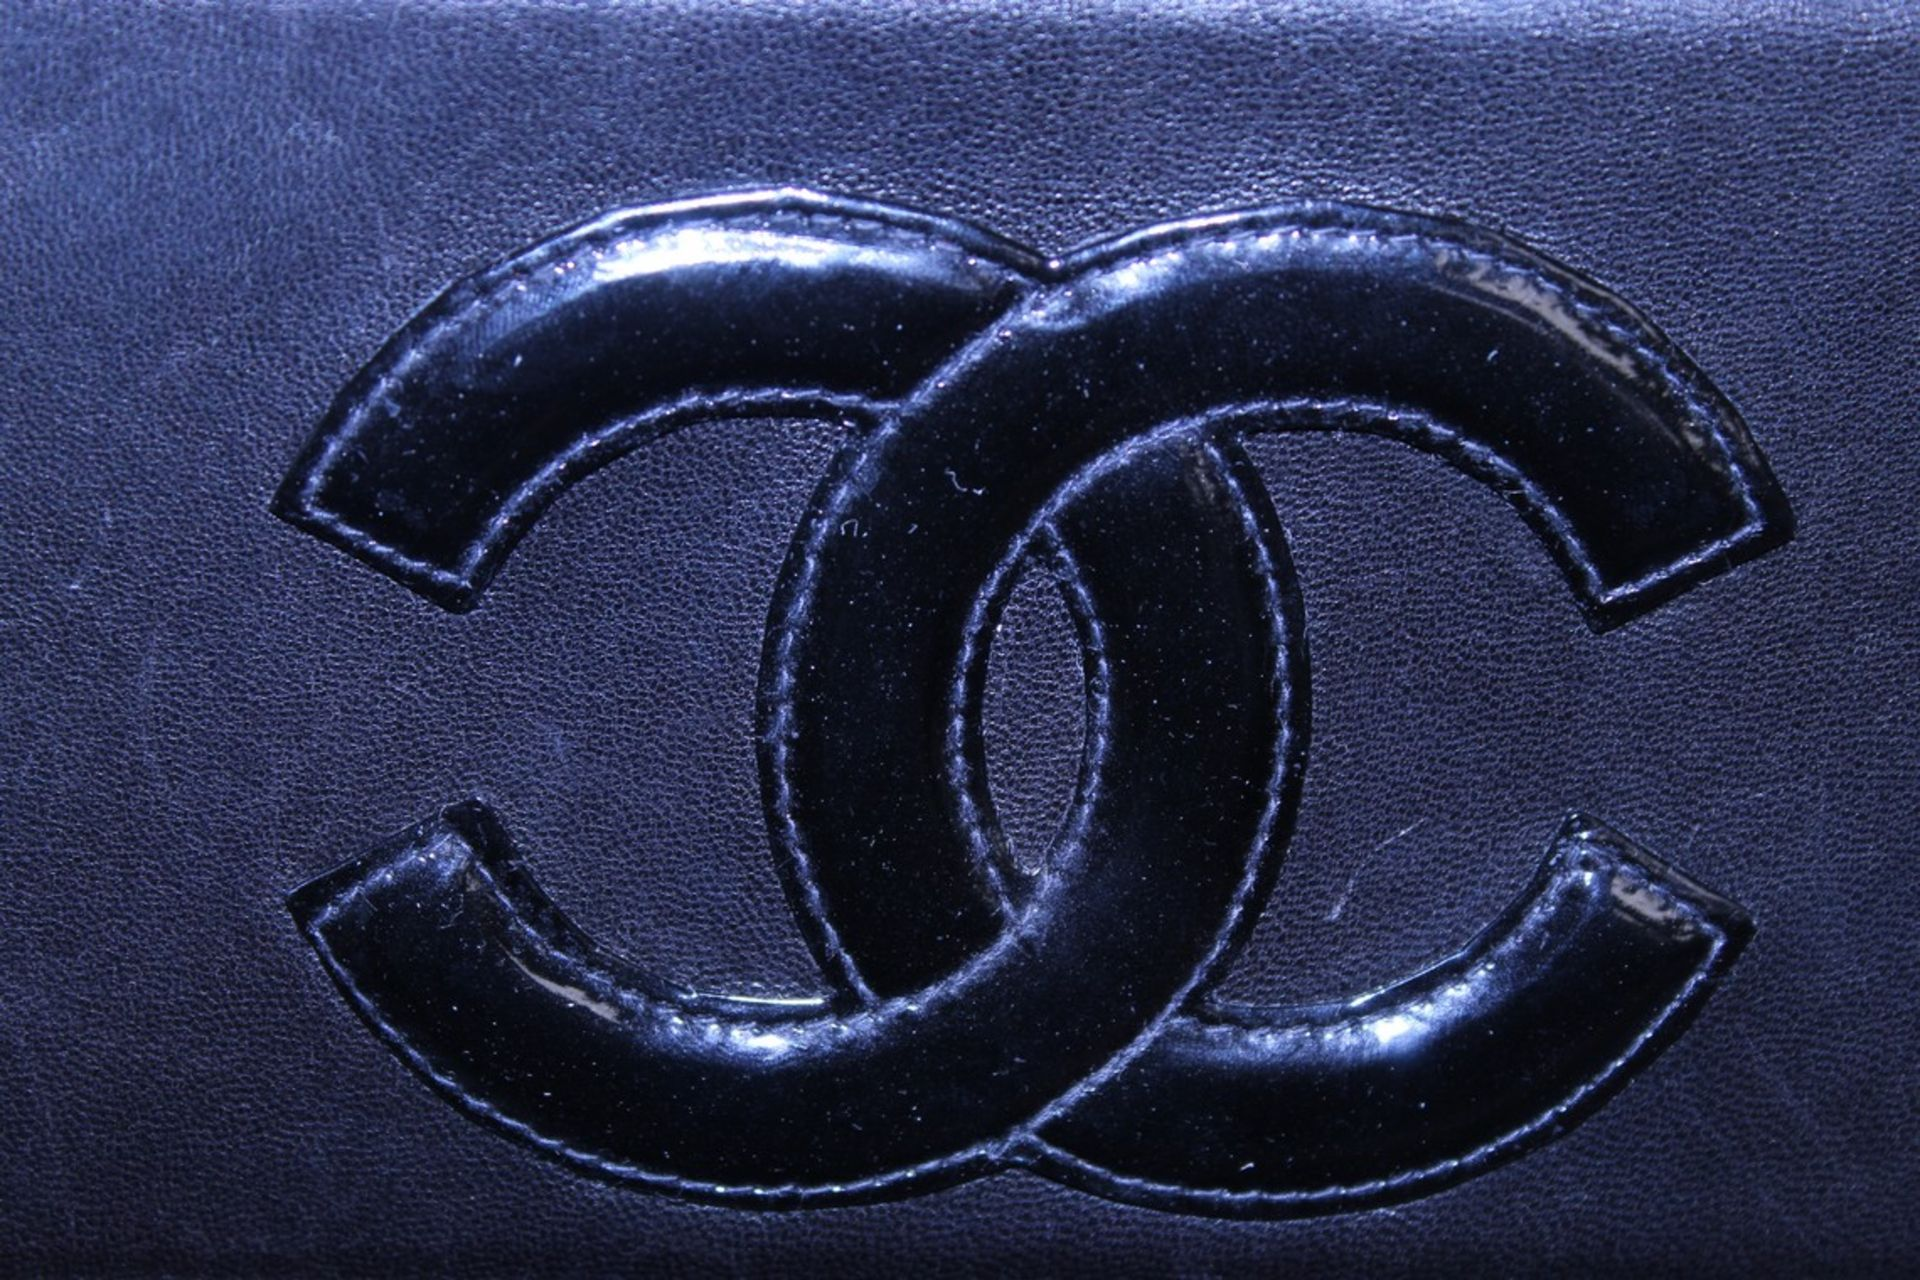 RRP £2000 Chanel Tall Logo Flap Chain Tote Shoulder Bag In Black Leather With Gold Chain Handles - Image 4 of 5